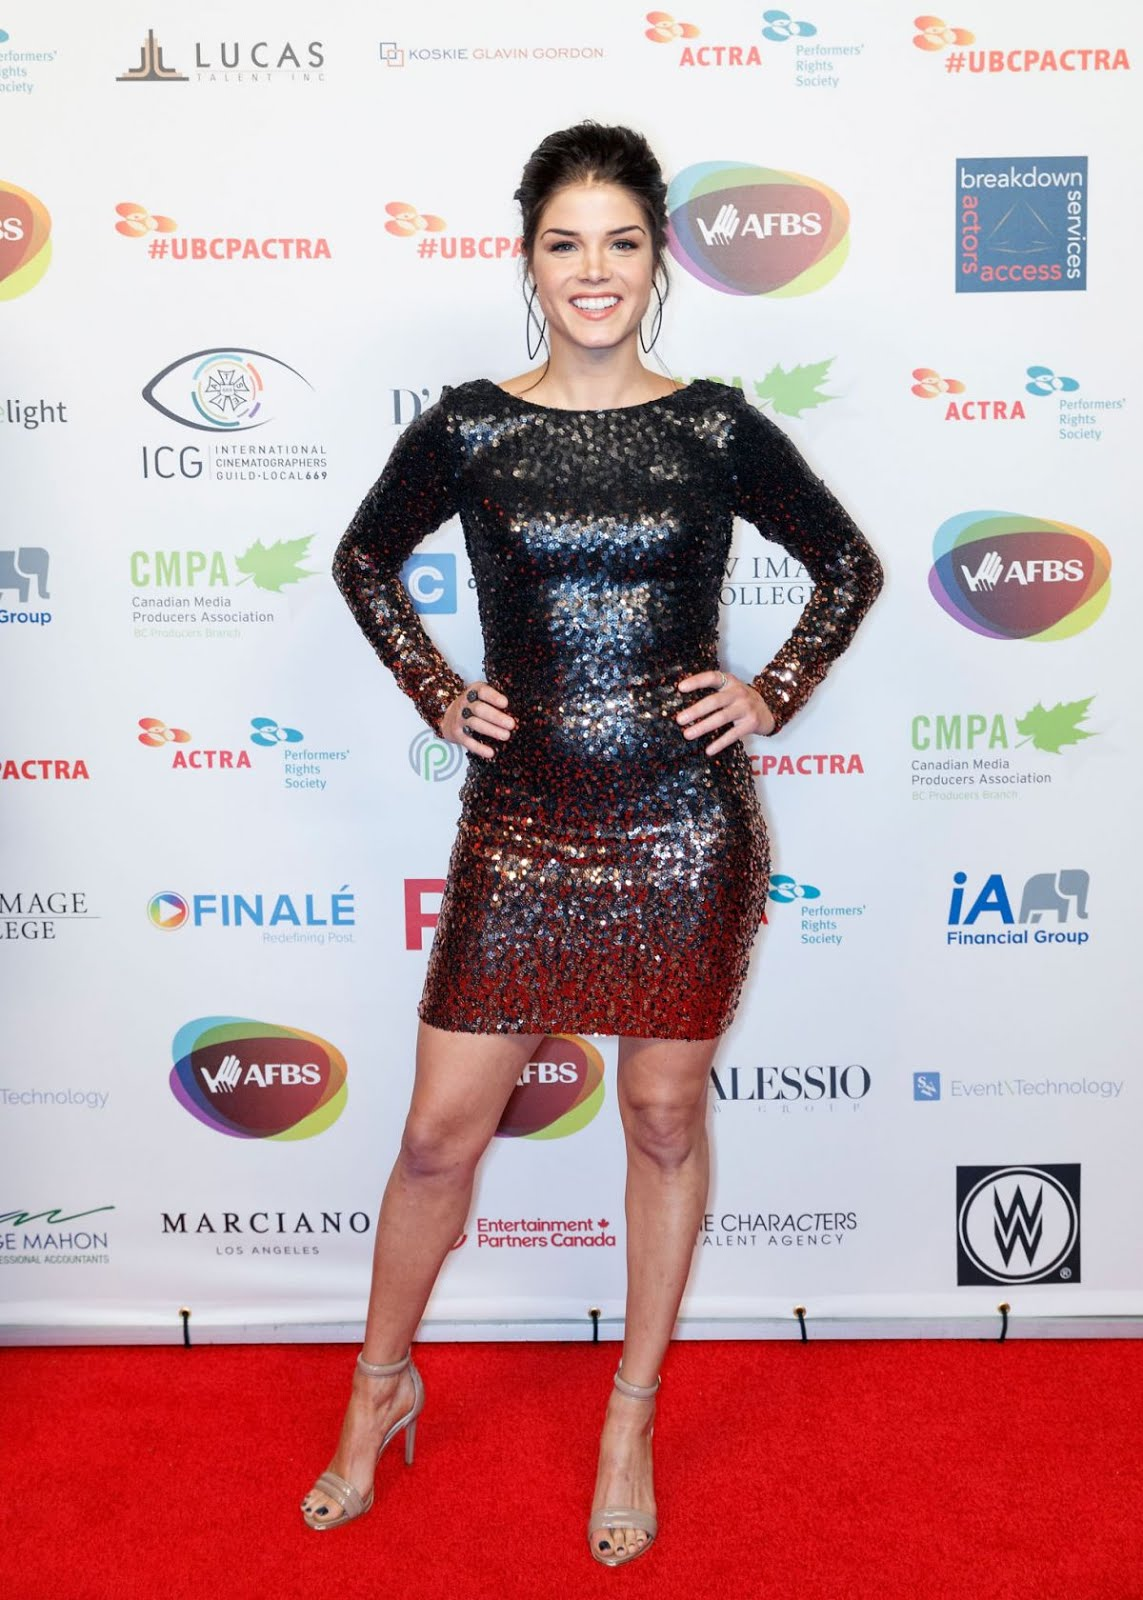 Photos of Hot & Sexy Marie Avgeropoulos at 6th Annual UBCP/ACTRA Awards in Vancouver